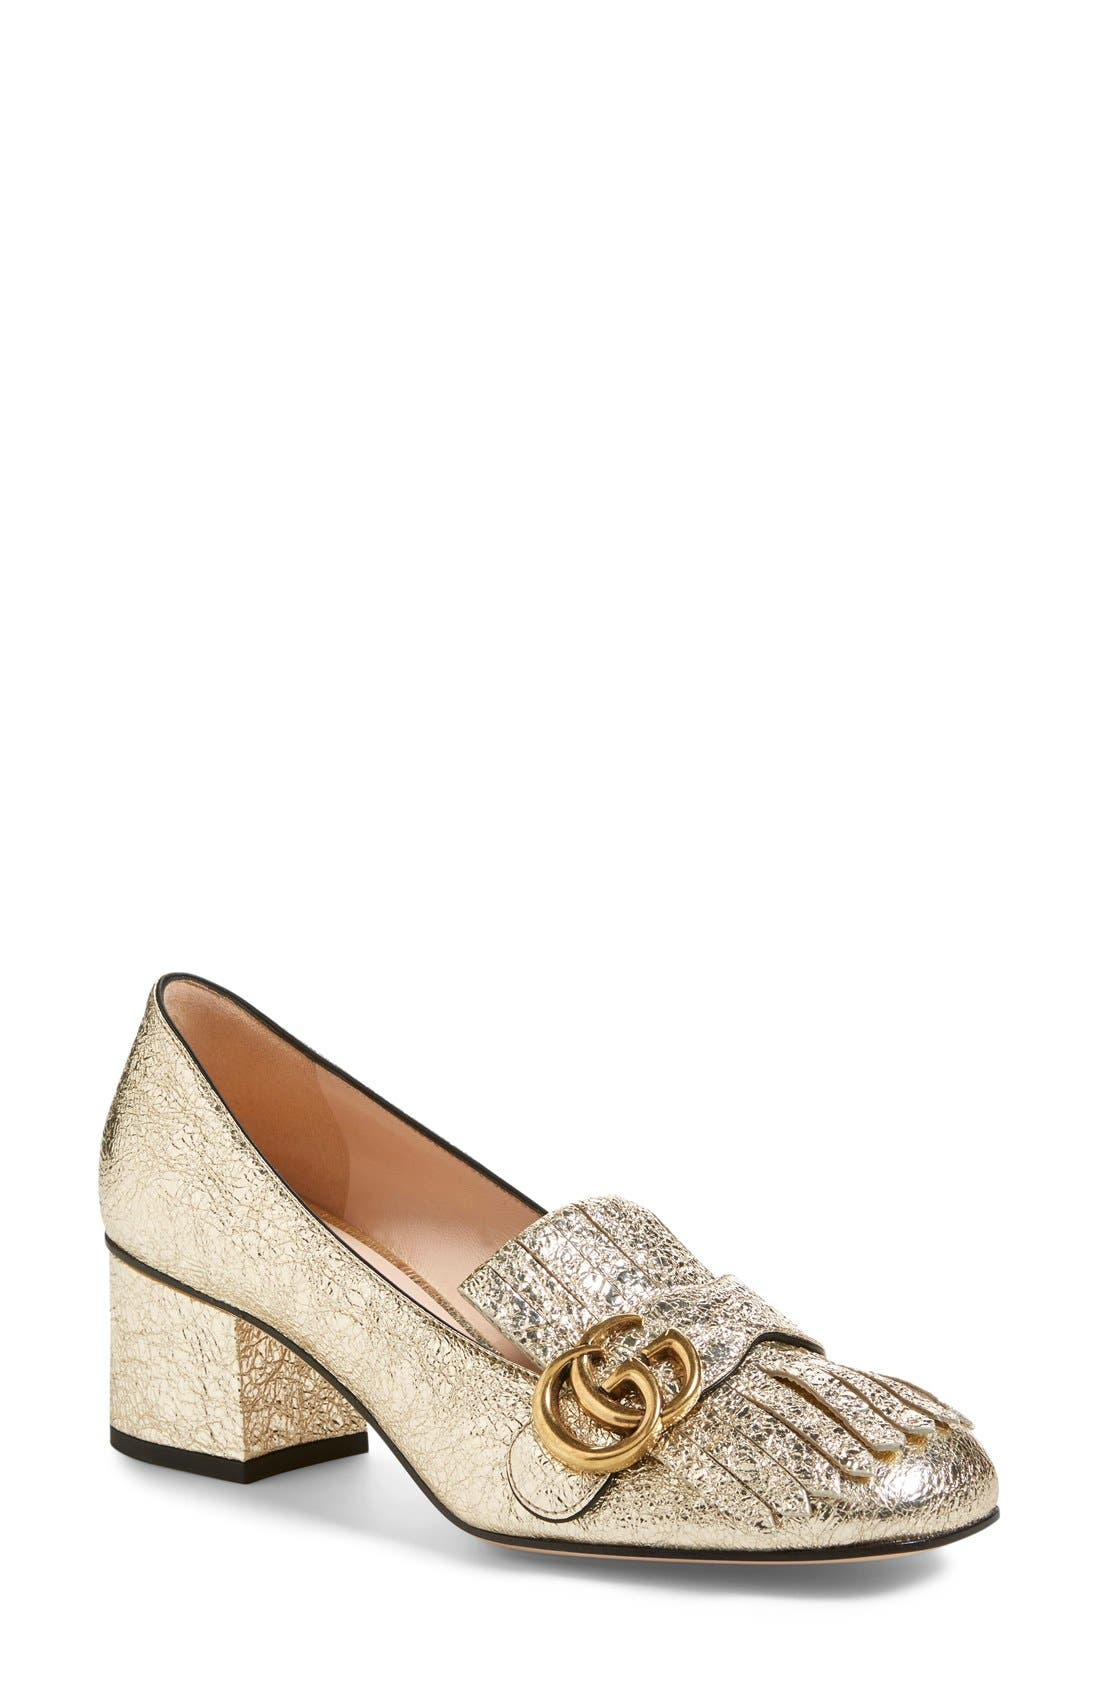 GG Marmont Pump,                         Main,                         color, GOLD LEATHER